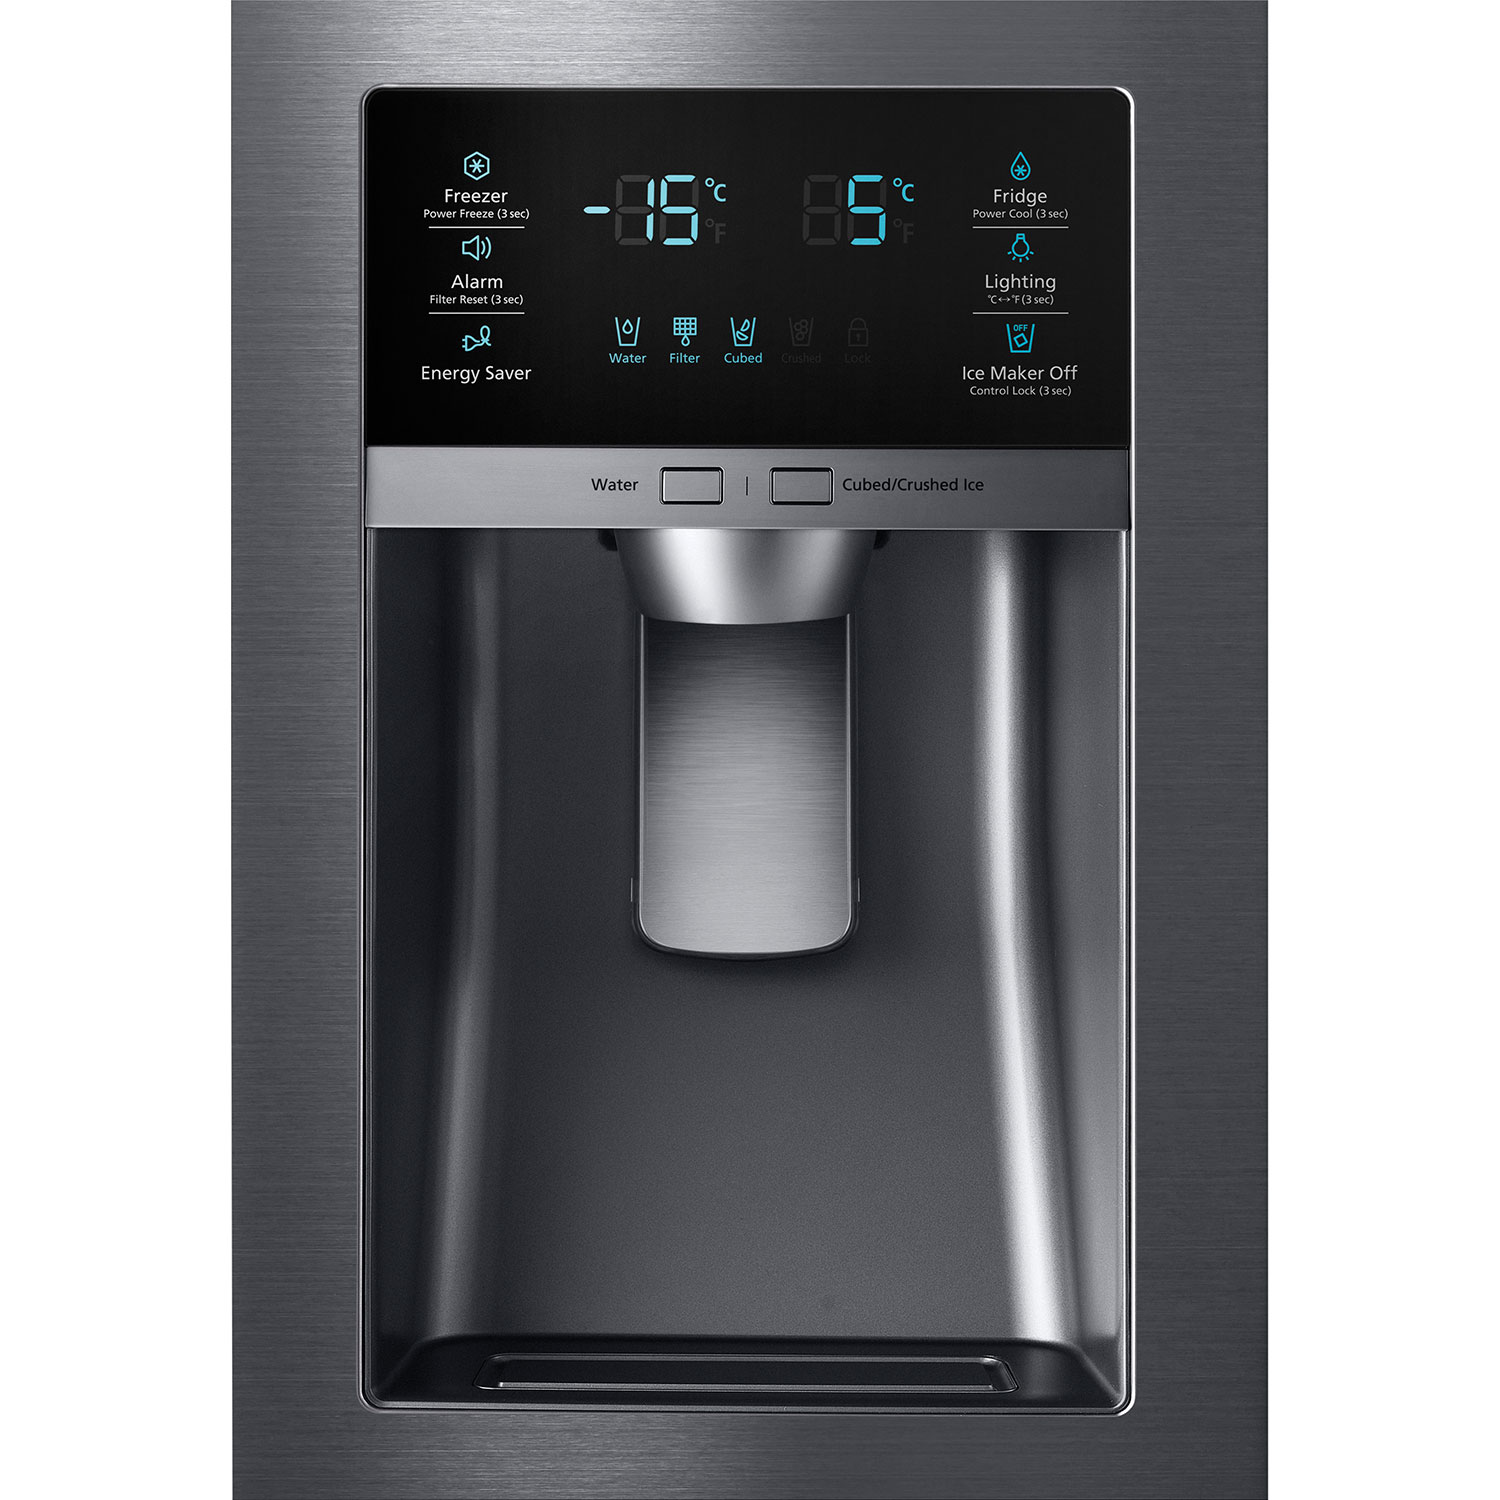 water filter samsung